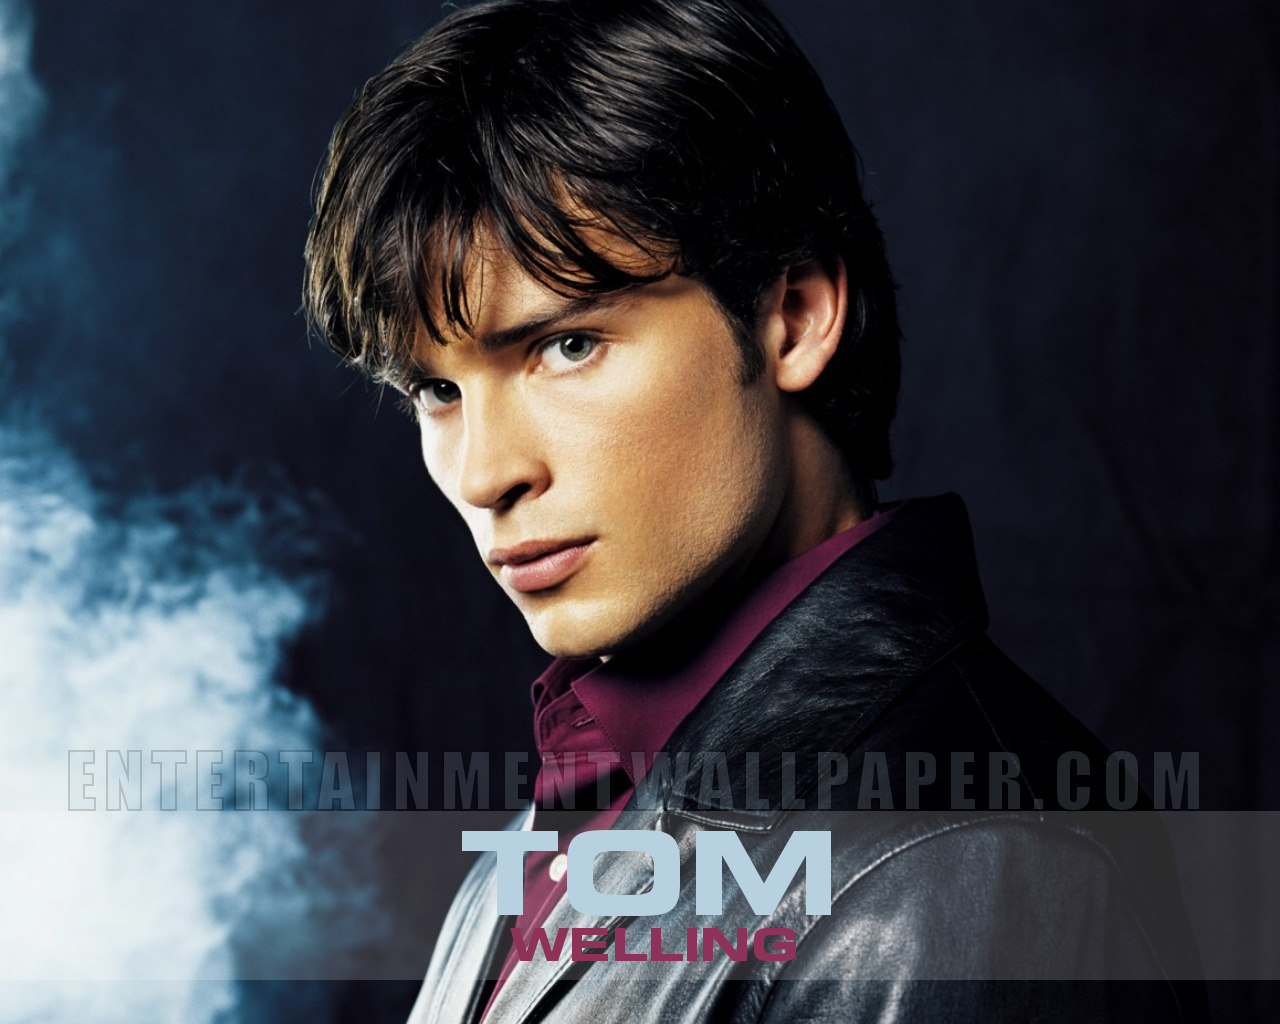 Tom Welling Wallpapers 1280x1024